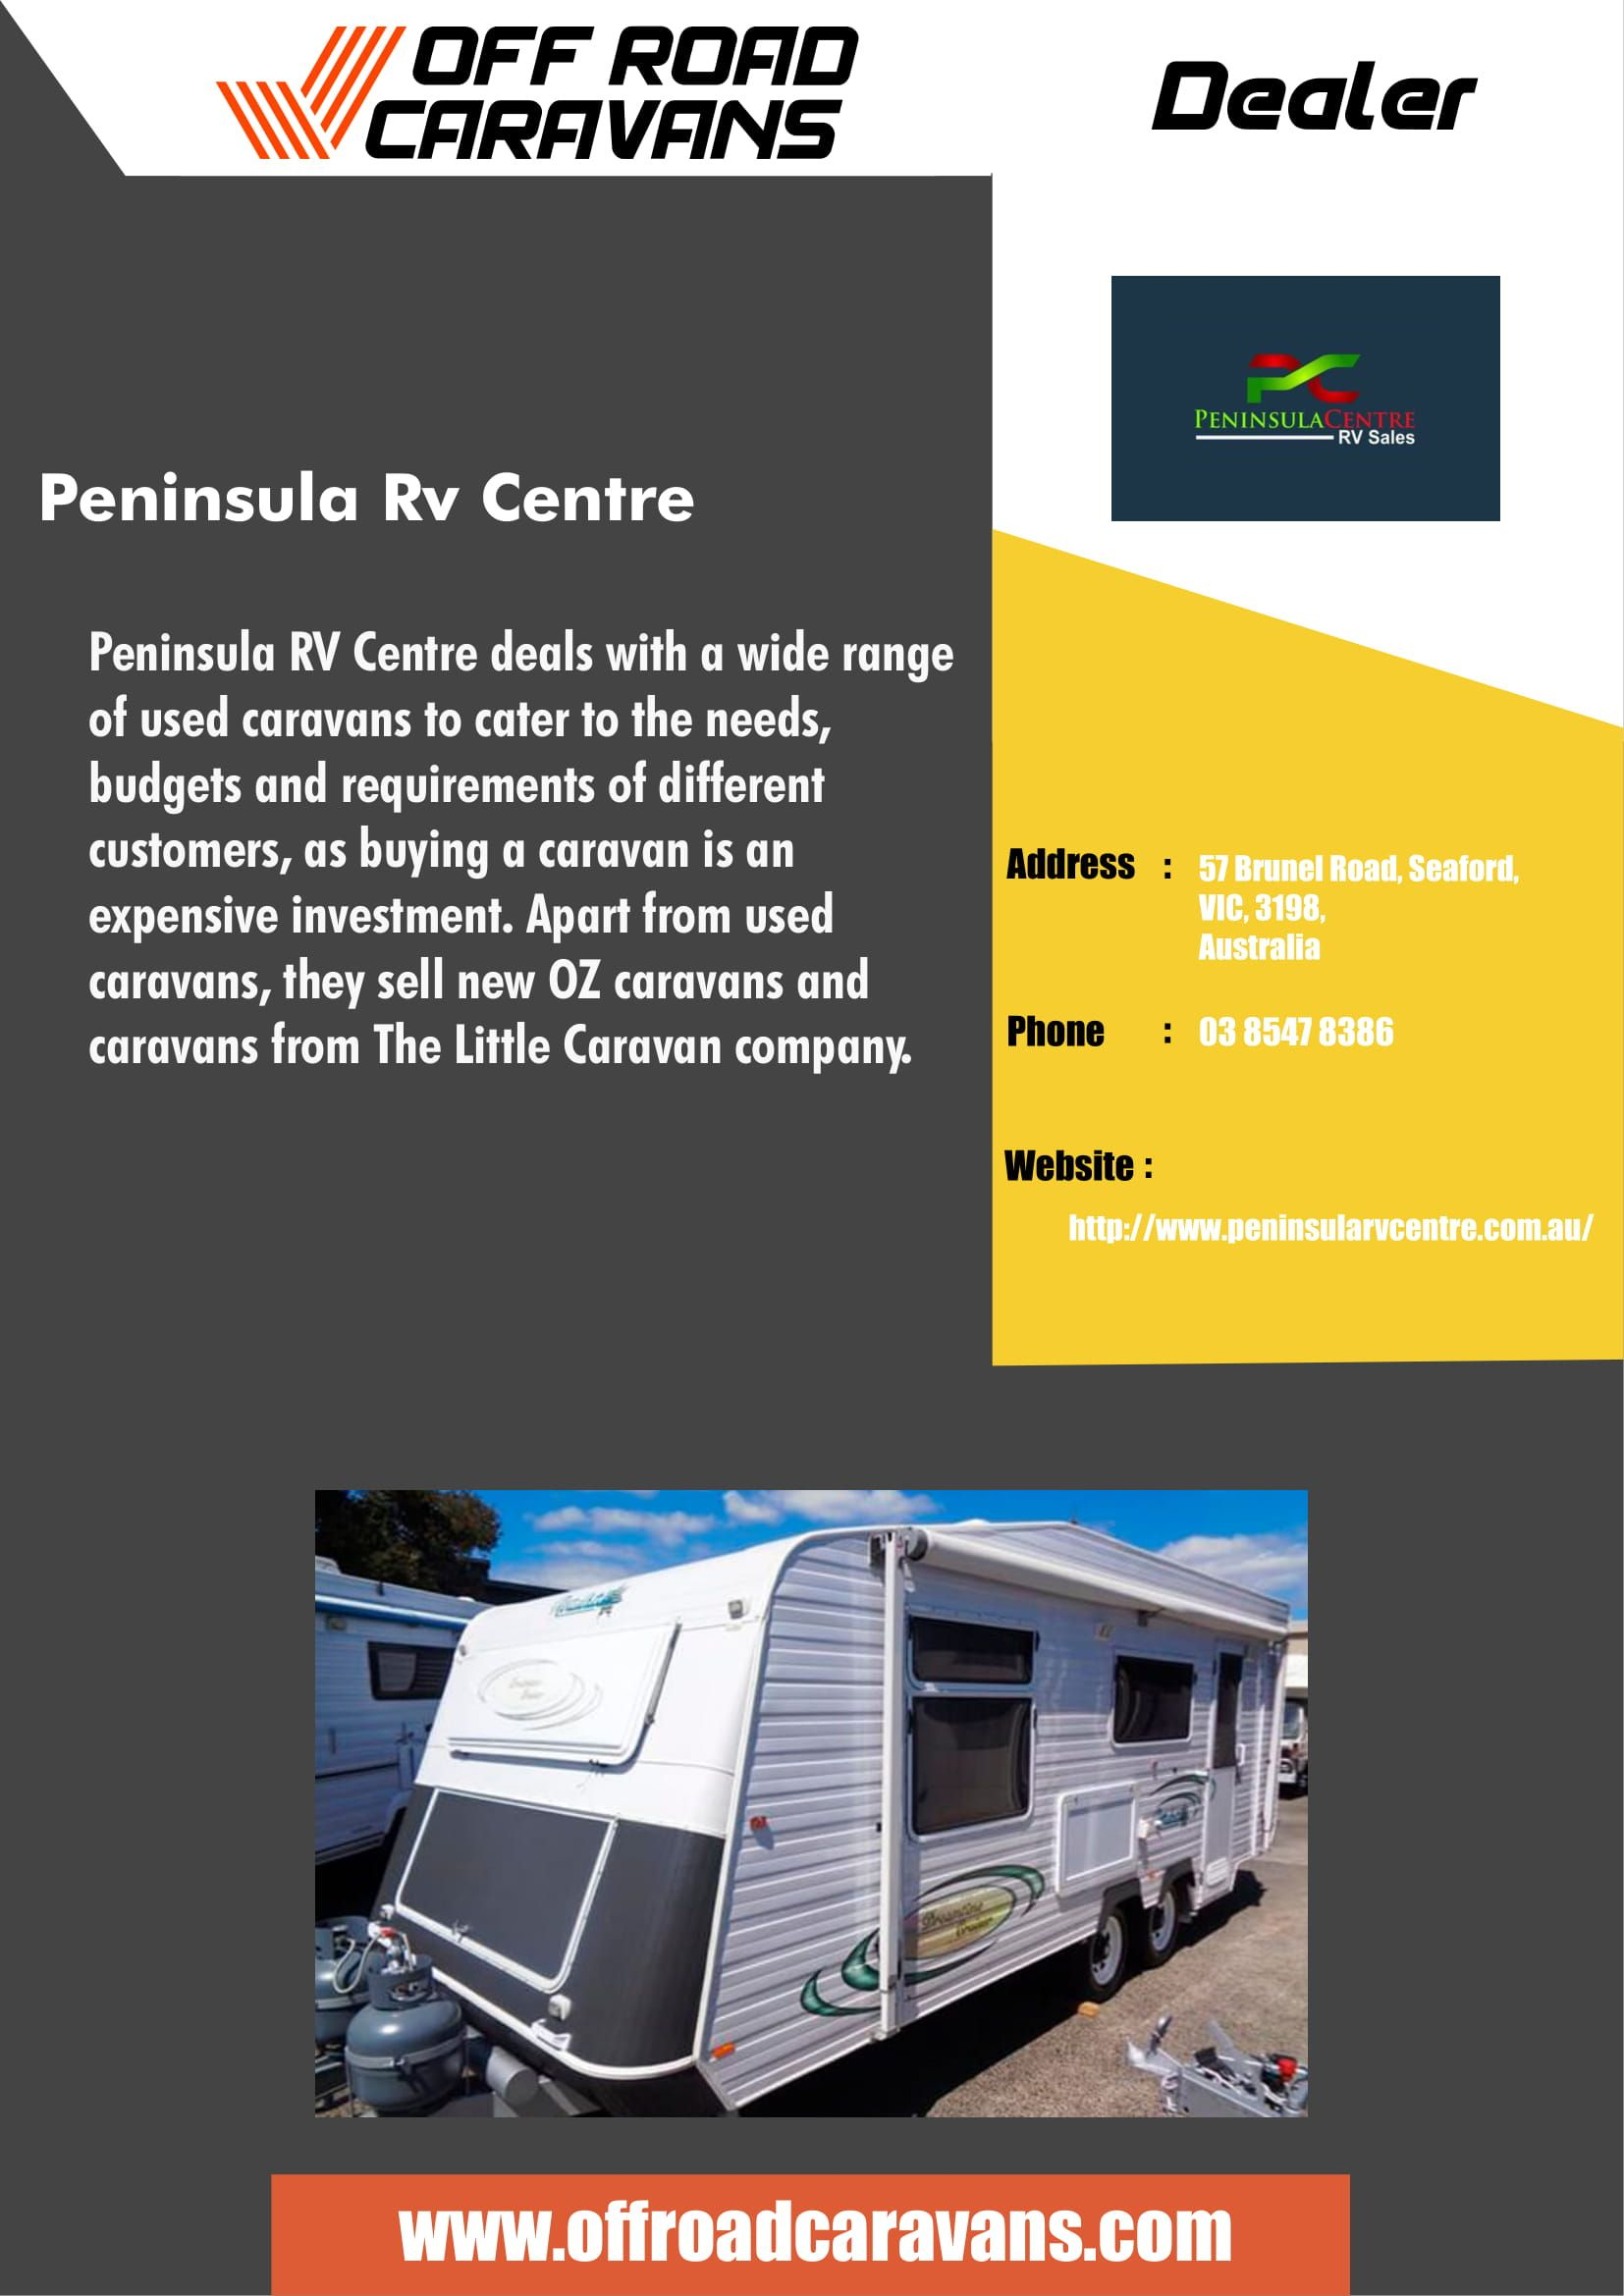 Peninsula Rv Centre Are Dealers For Oz Caravans And The Little